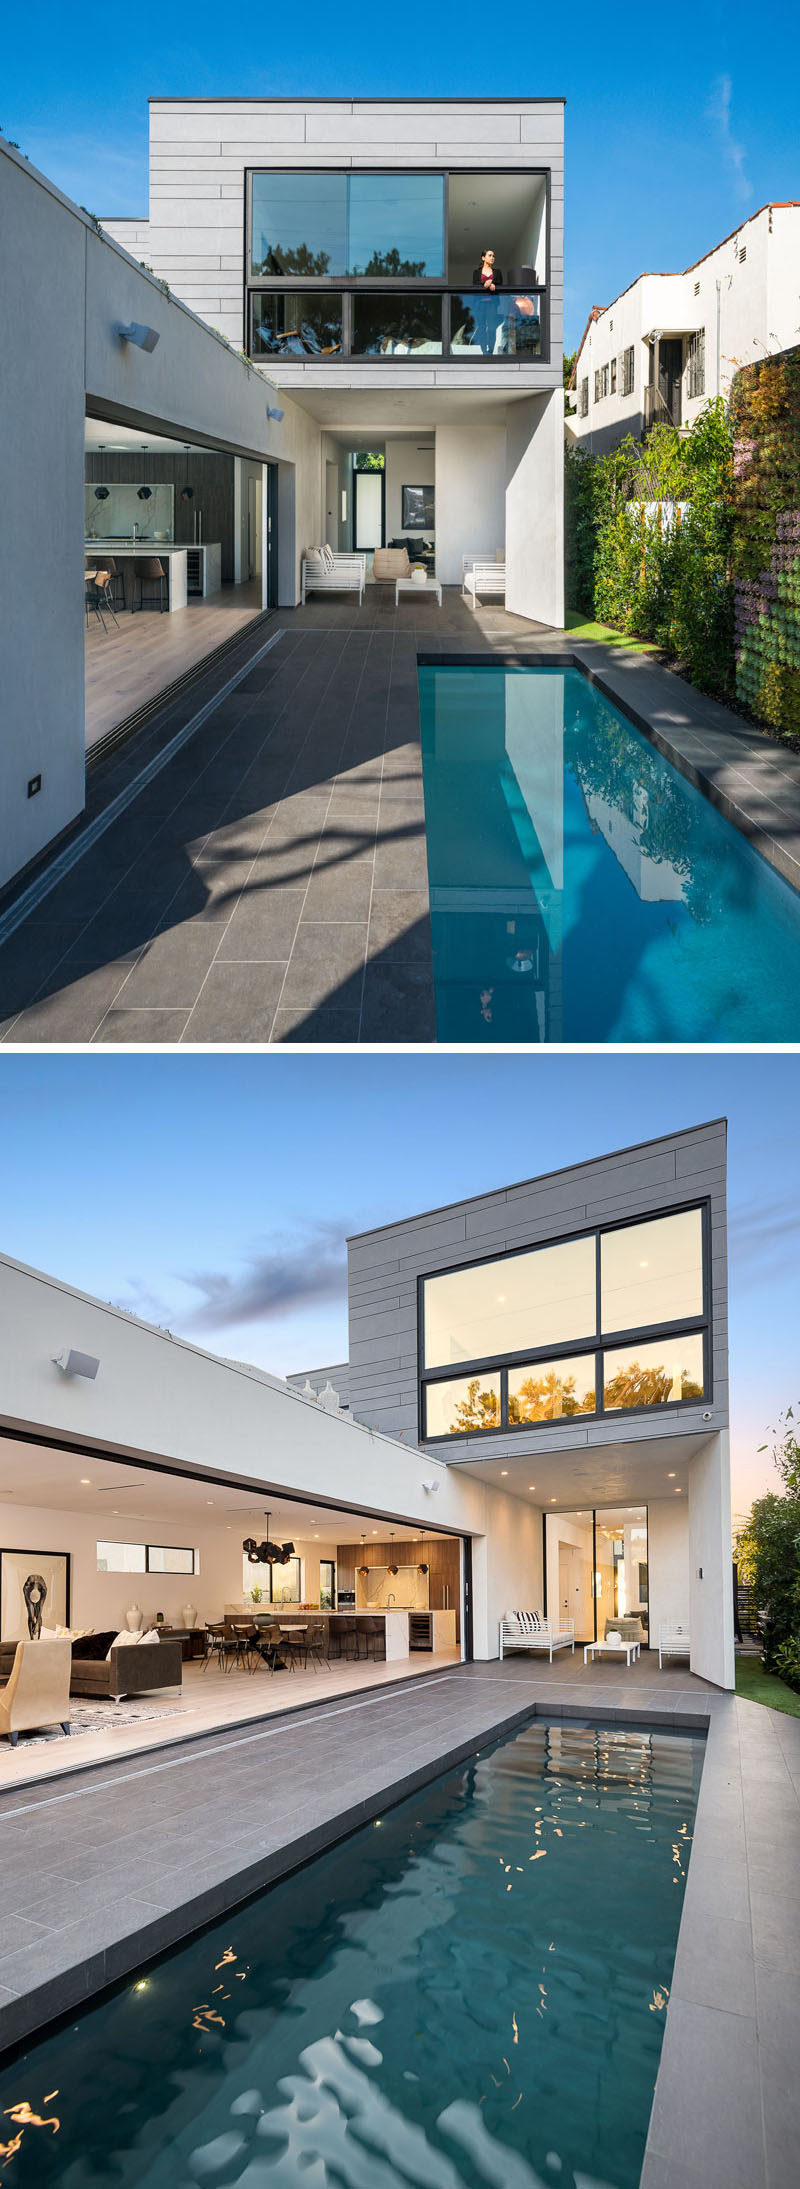 This modern house has sliding glass walls and doors that open the interior of the home to the backyard and swimming pool. #ModernHouse #SwimmingPool